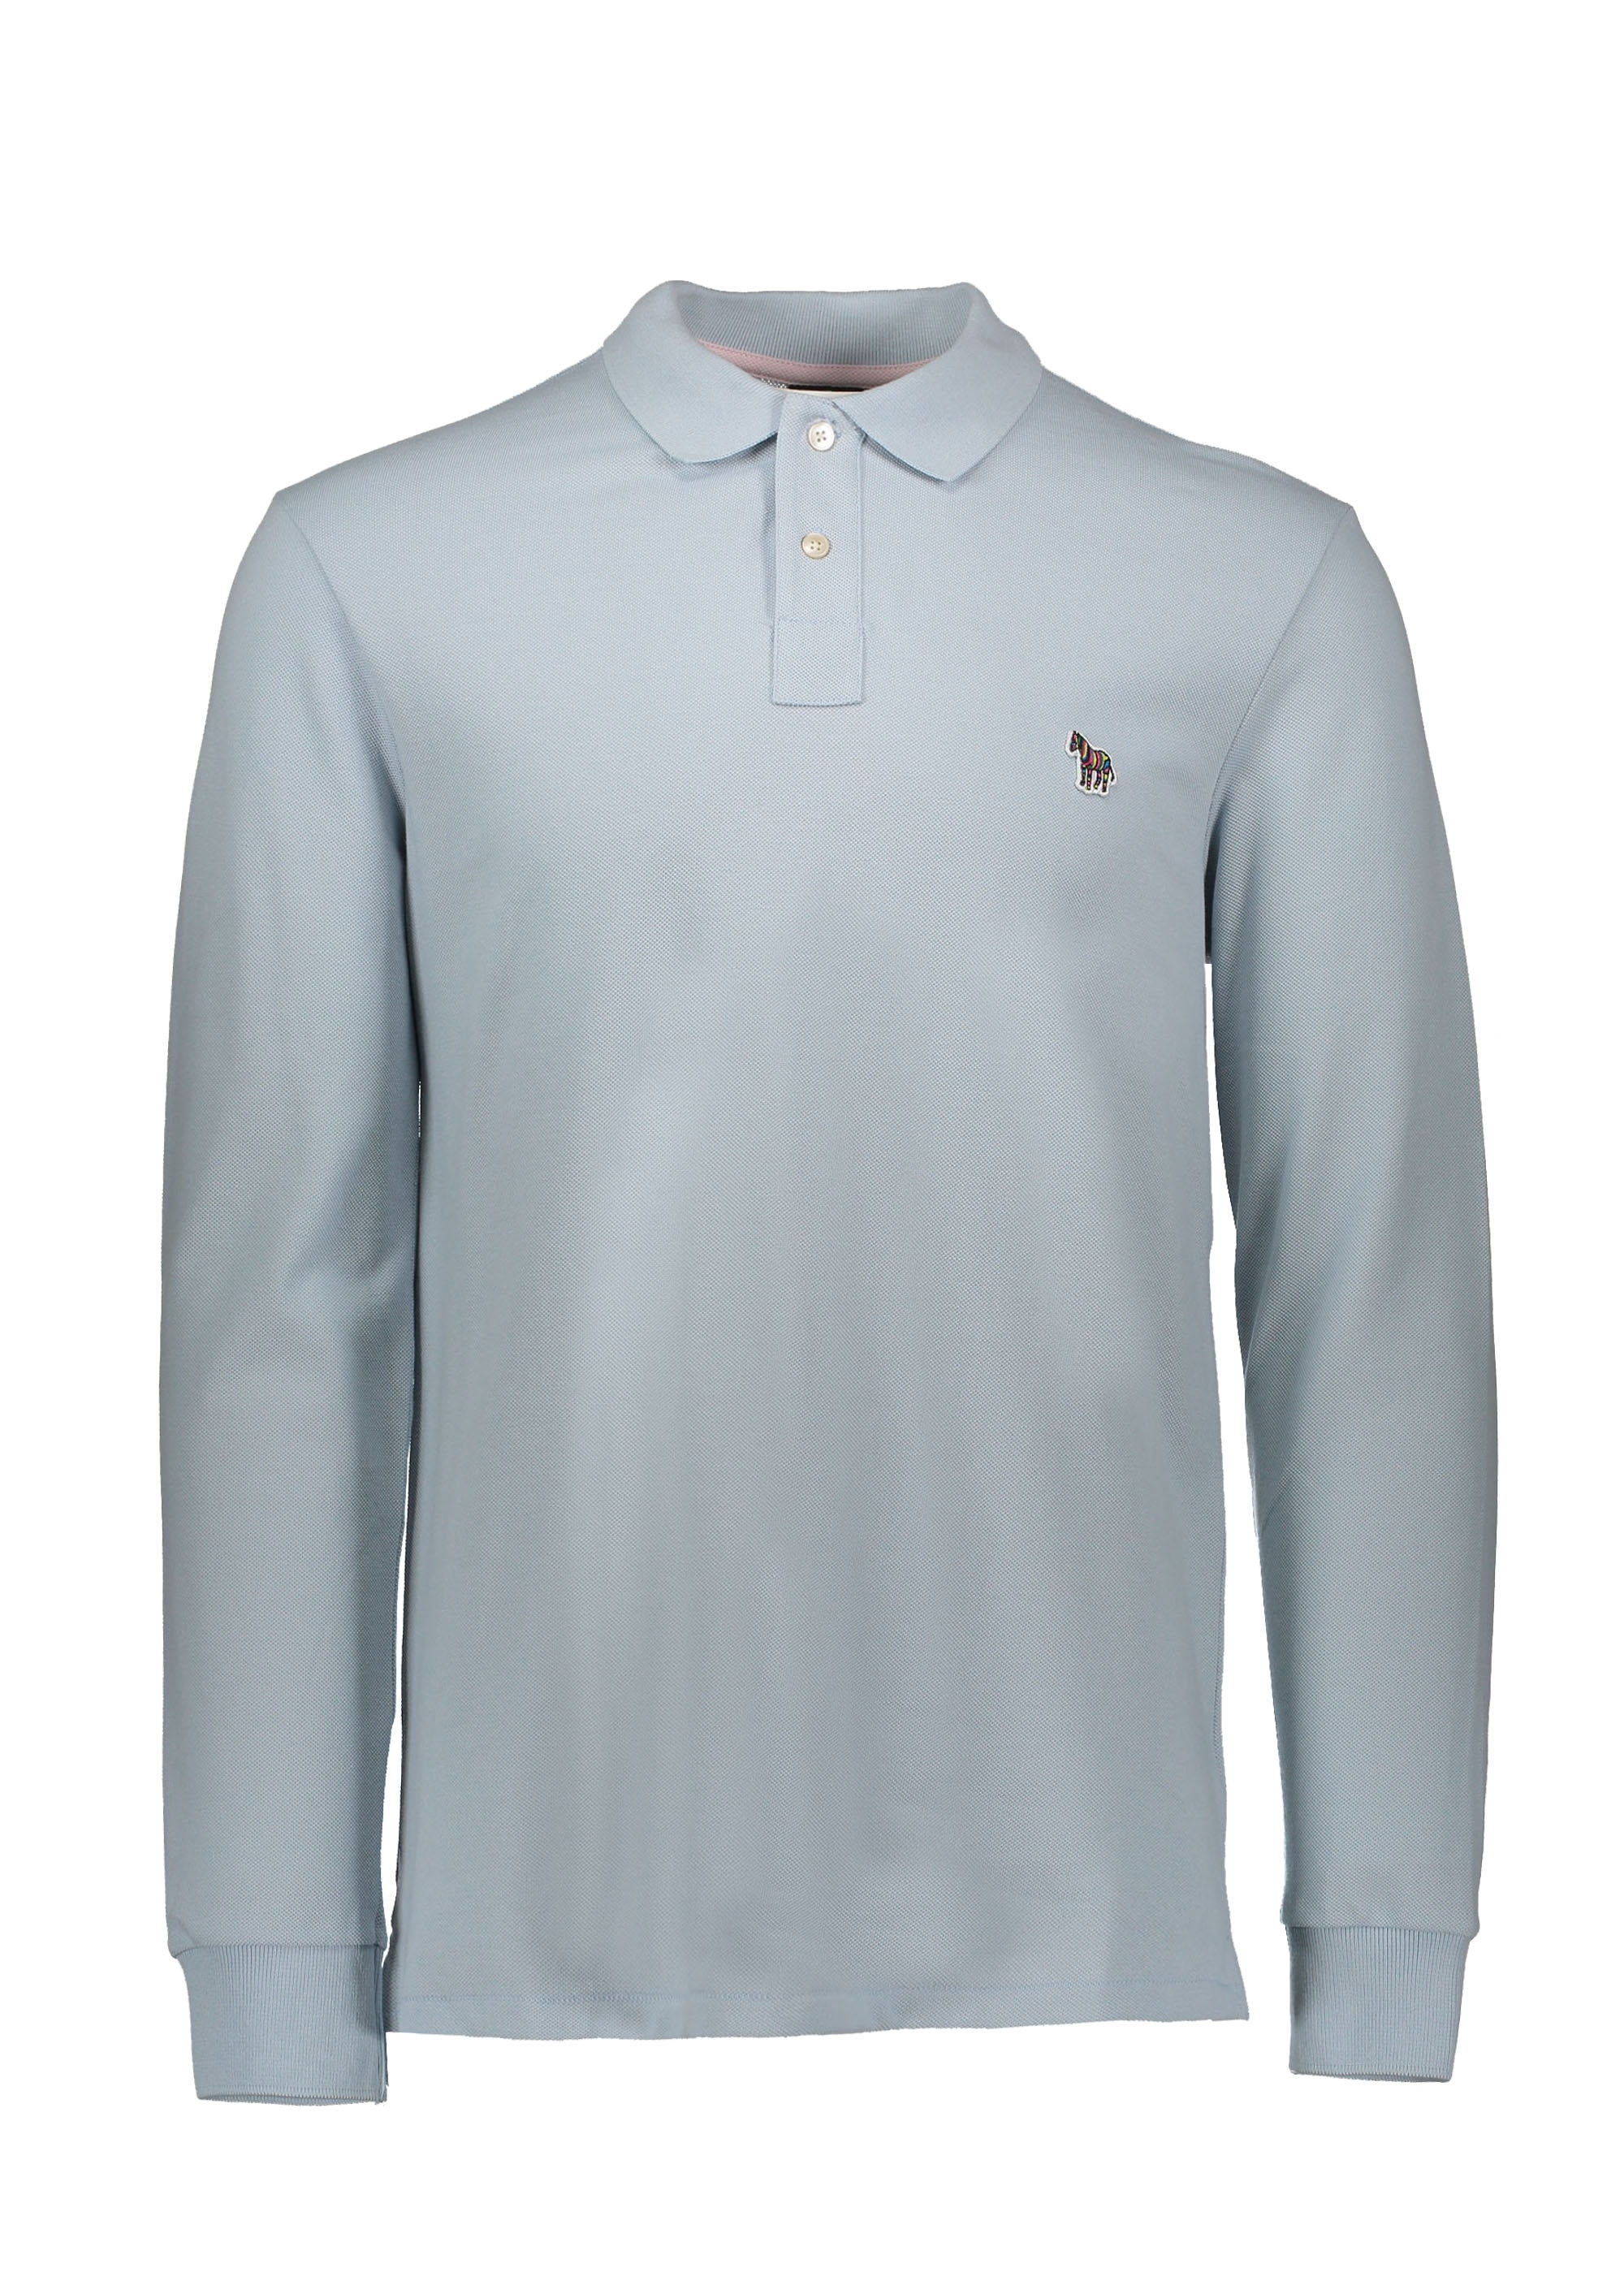 2abce5c6 Paul Smith LS Polo - Light Blue - Triads Mens from Triads UK